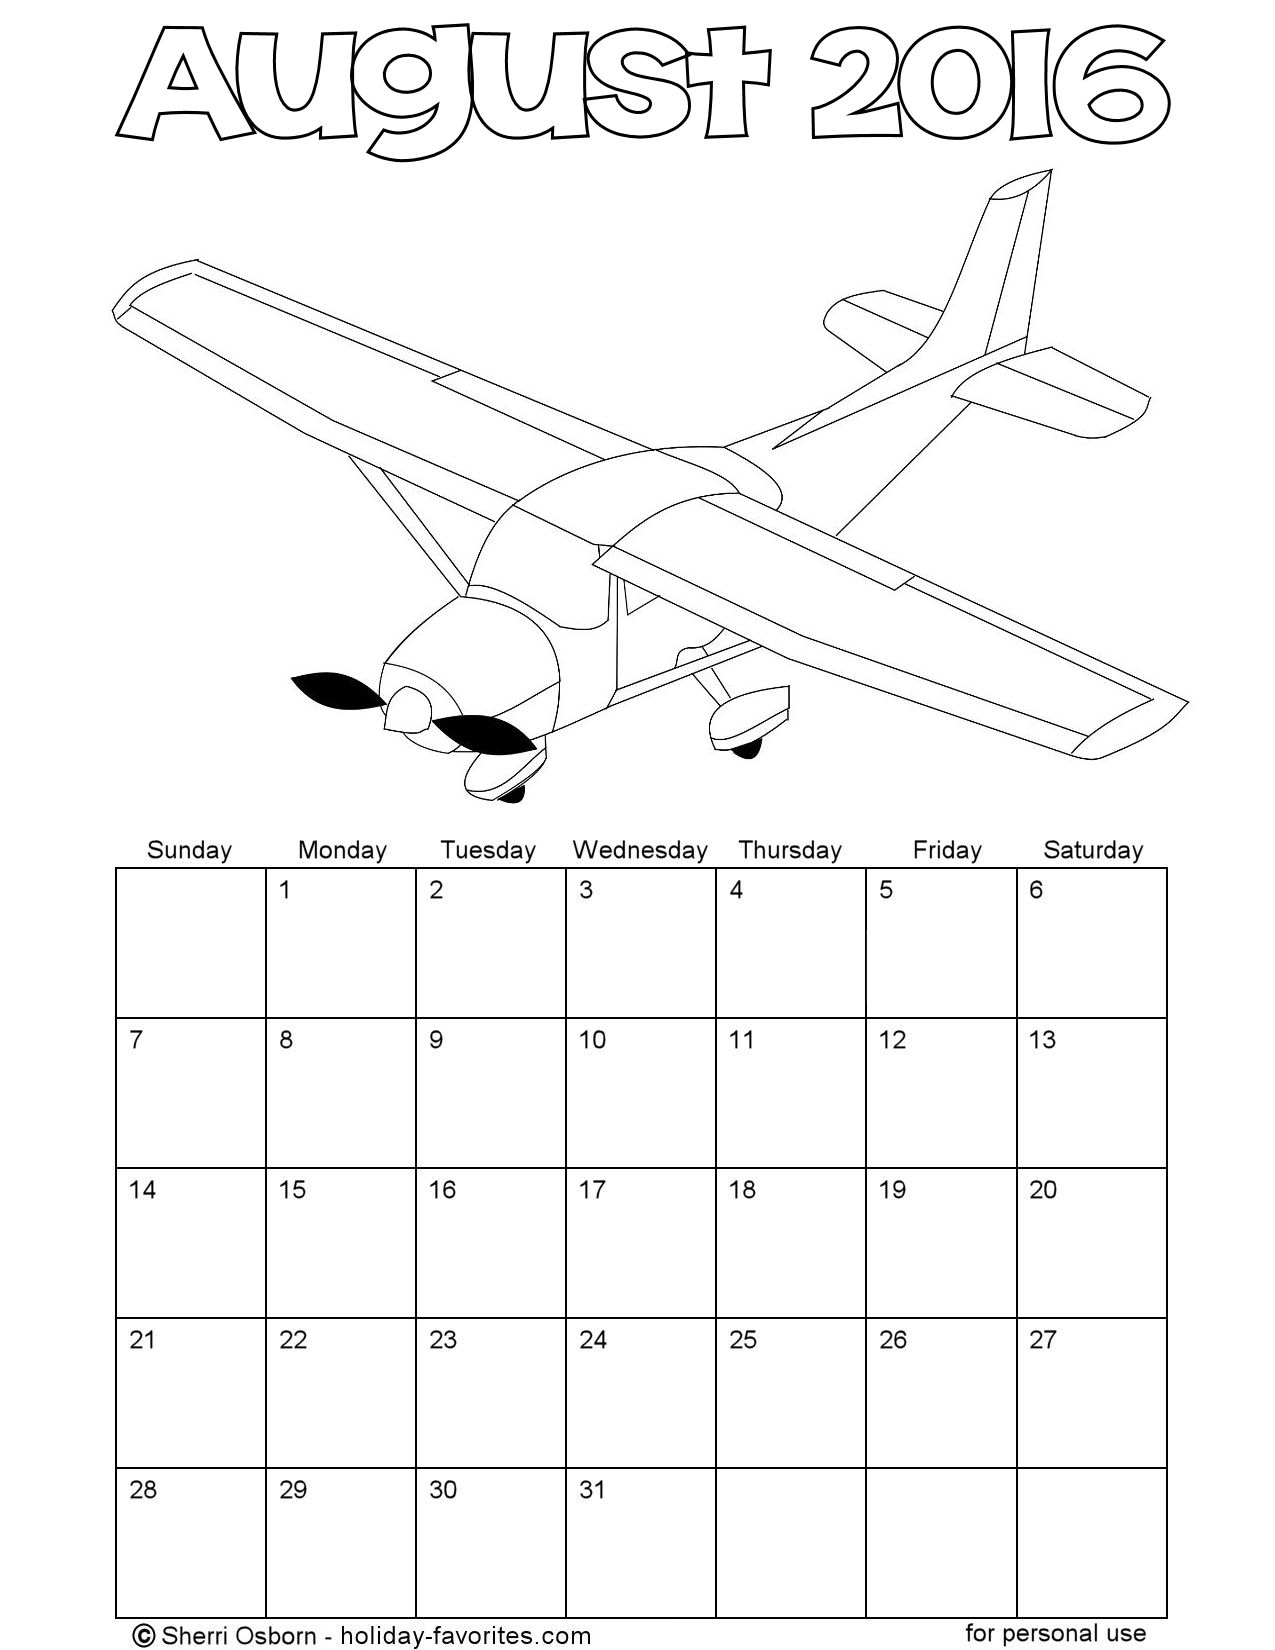 Printable Airplane Coloring Calendar for August